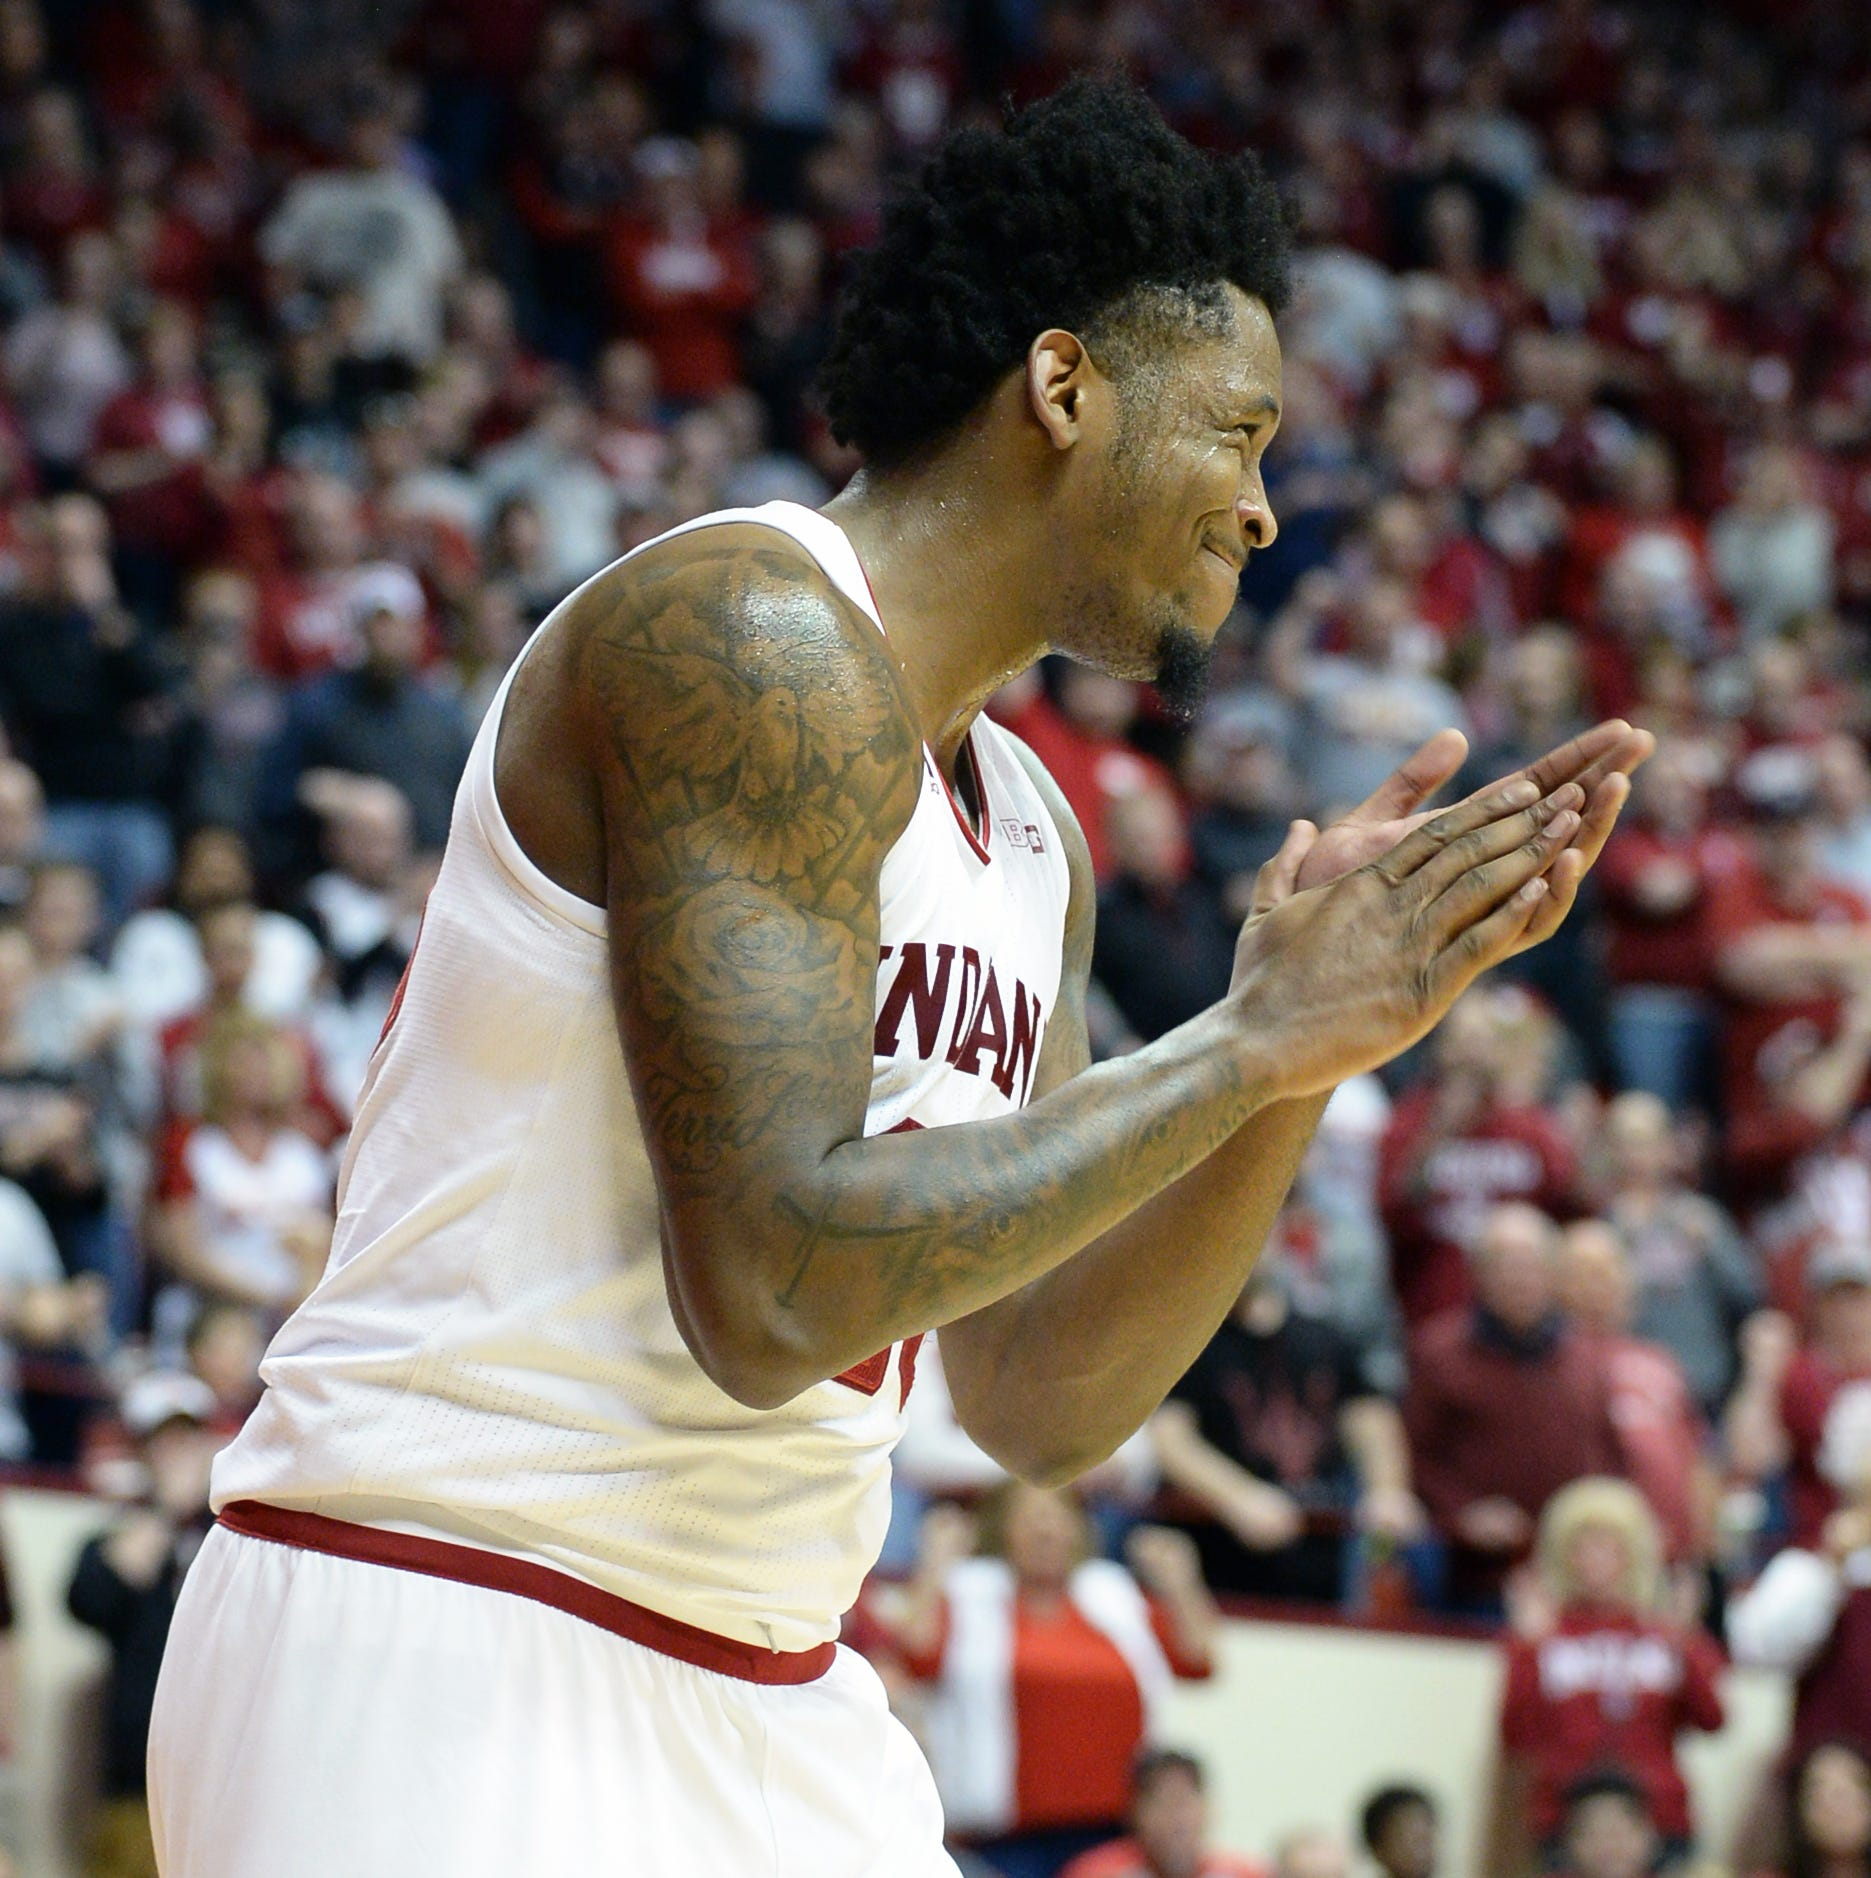 Insider: After NCAA disappointment, IU having fun, making the most of NIT